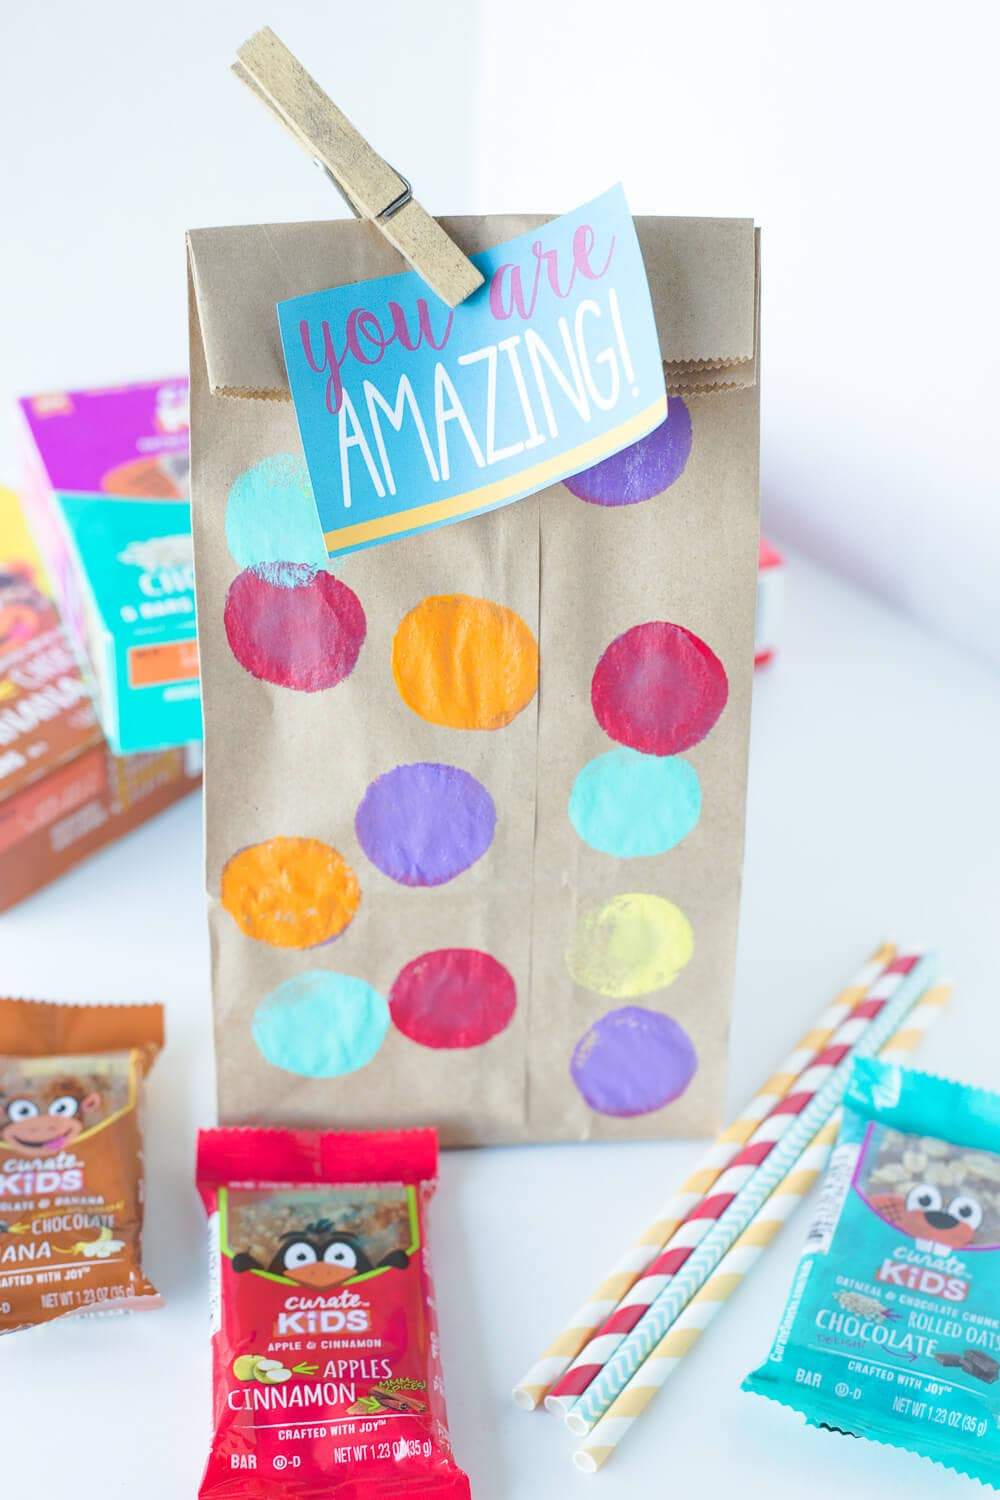 Five Lunchbox Packing Tips... painted lunch bag ready to go!